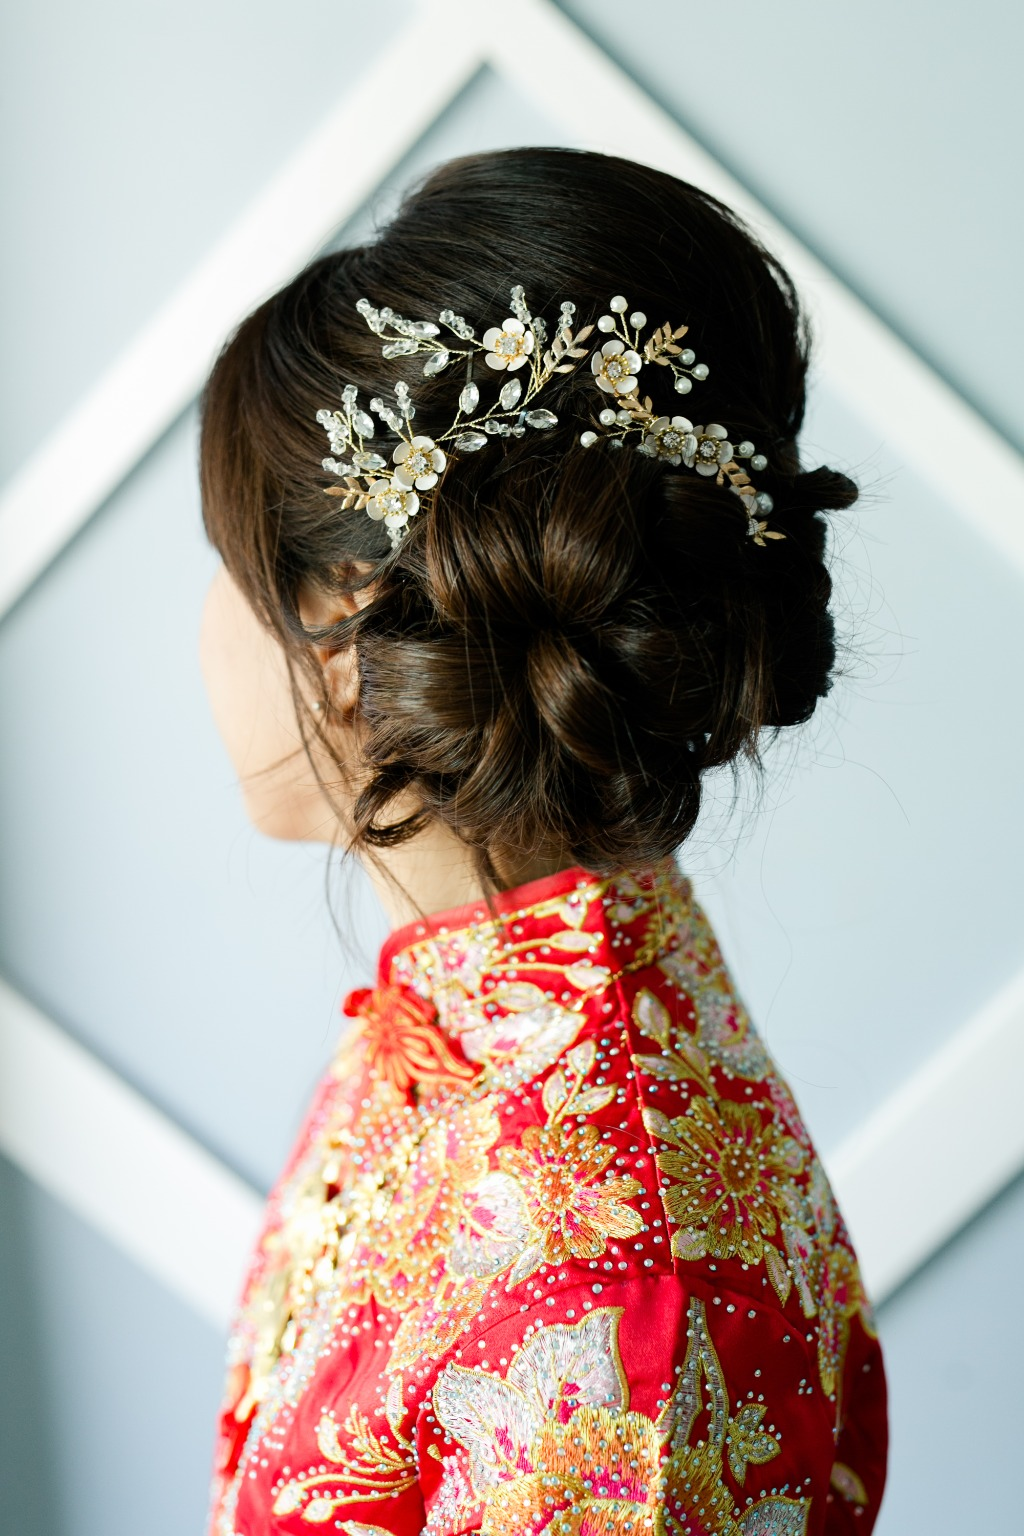 Our bride looked beautiful in her traditional Chinese wedding cheongsam, which brought in a touch of her heritage to the tea ceremony